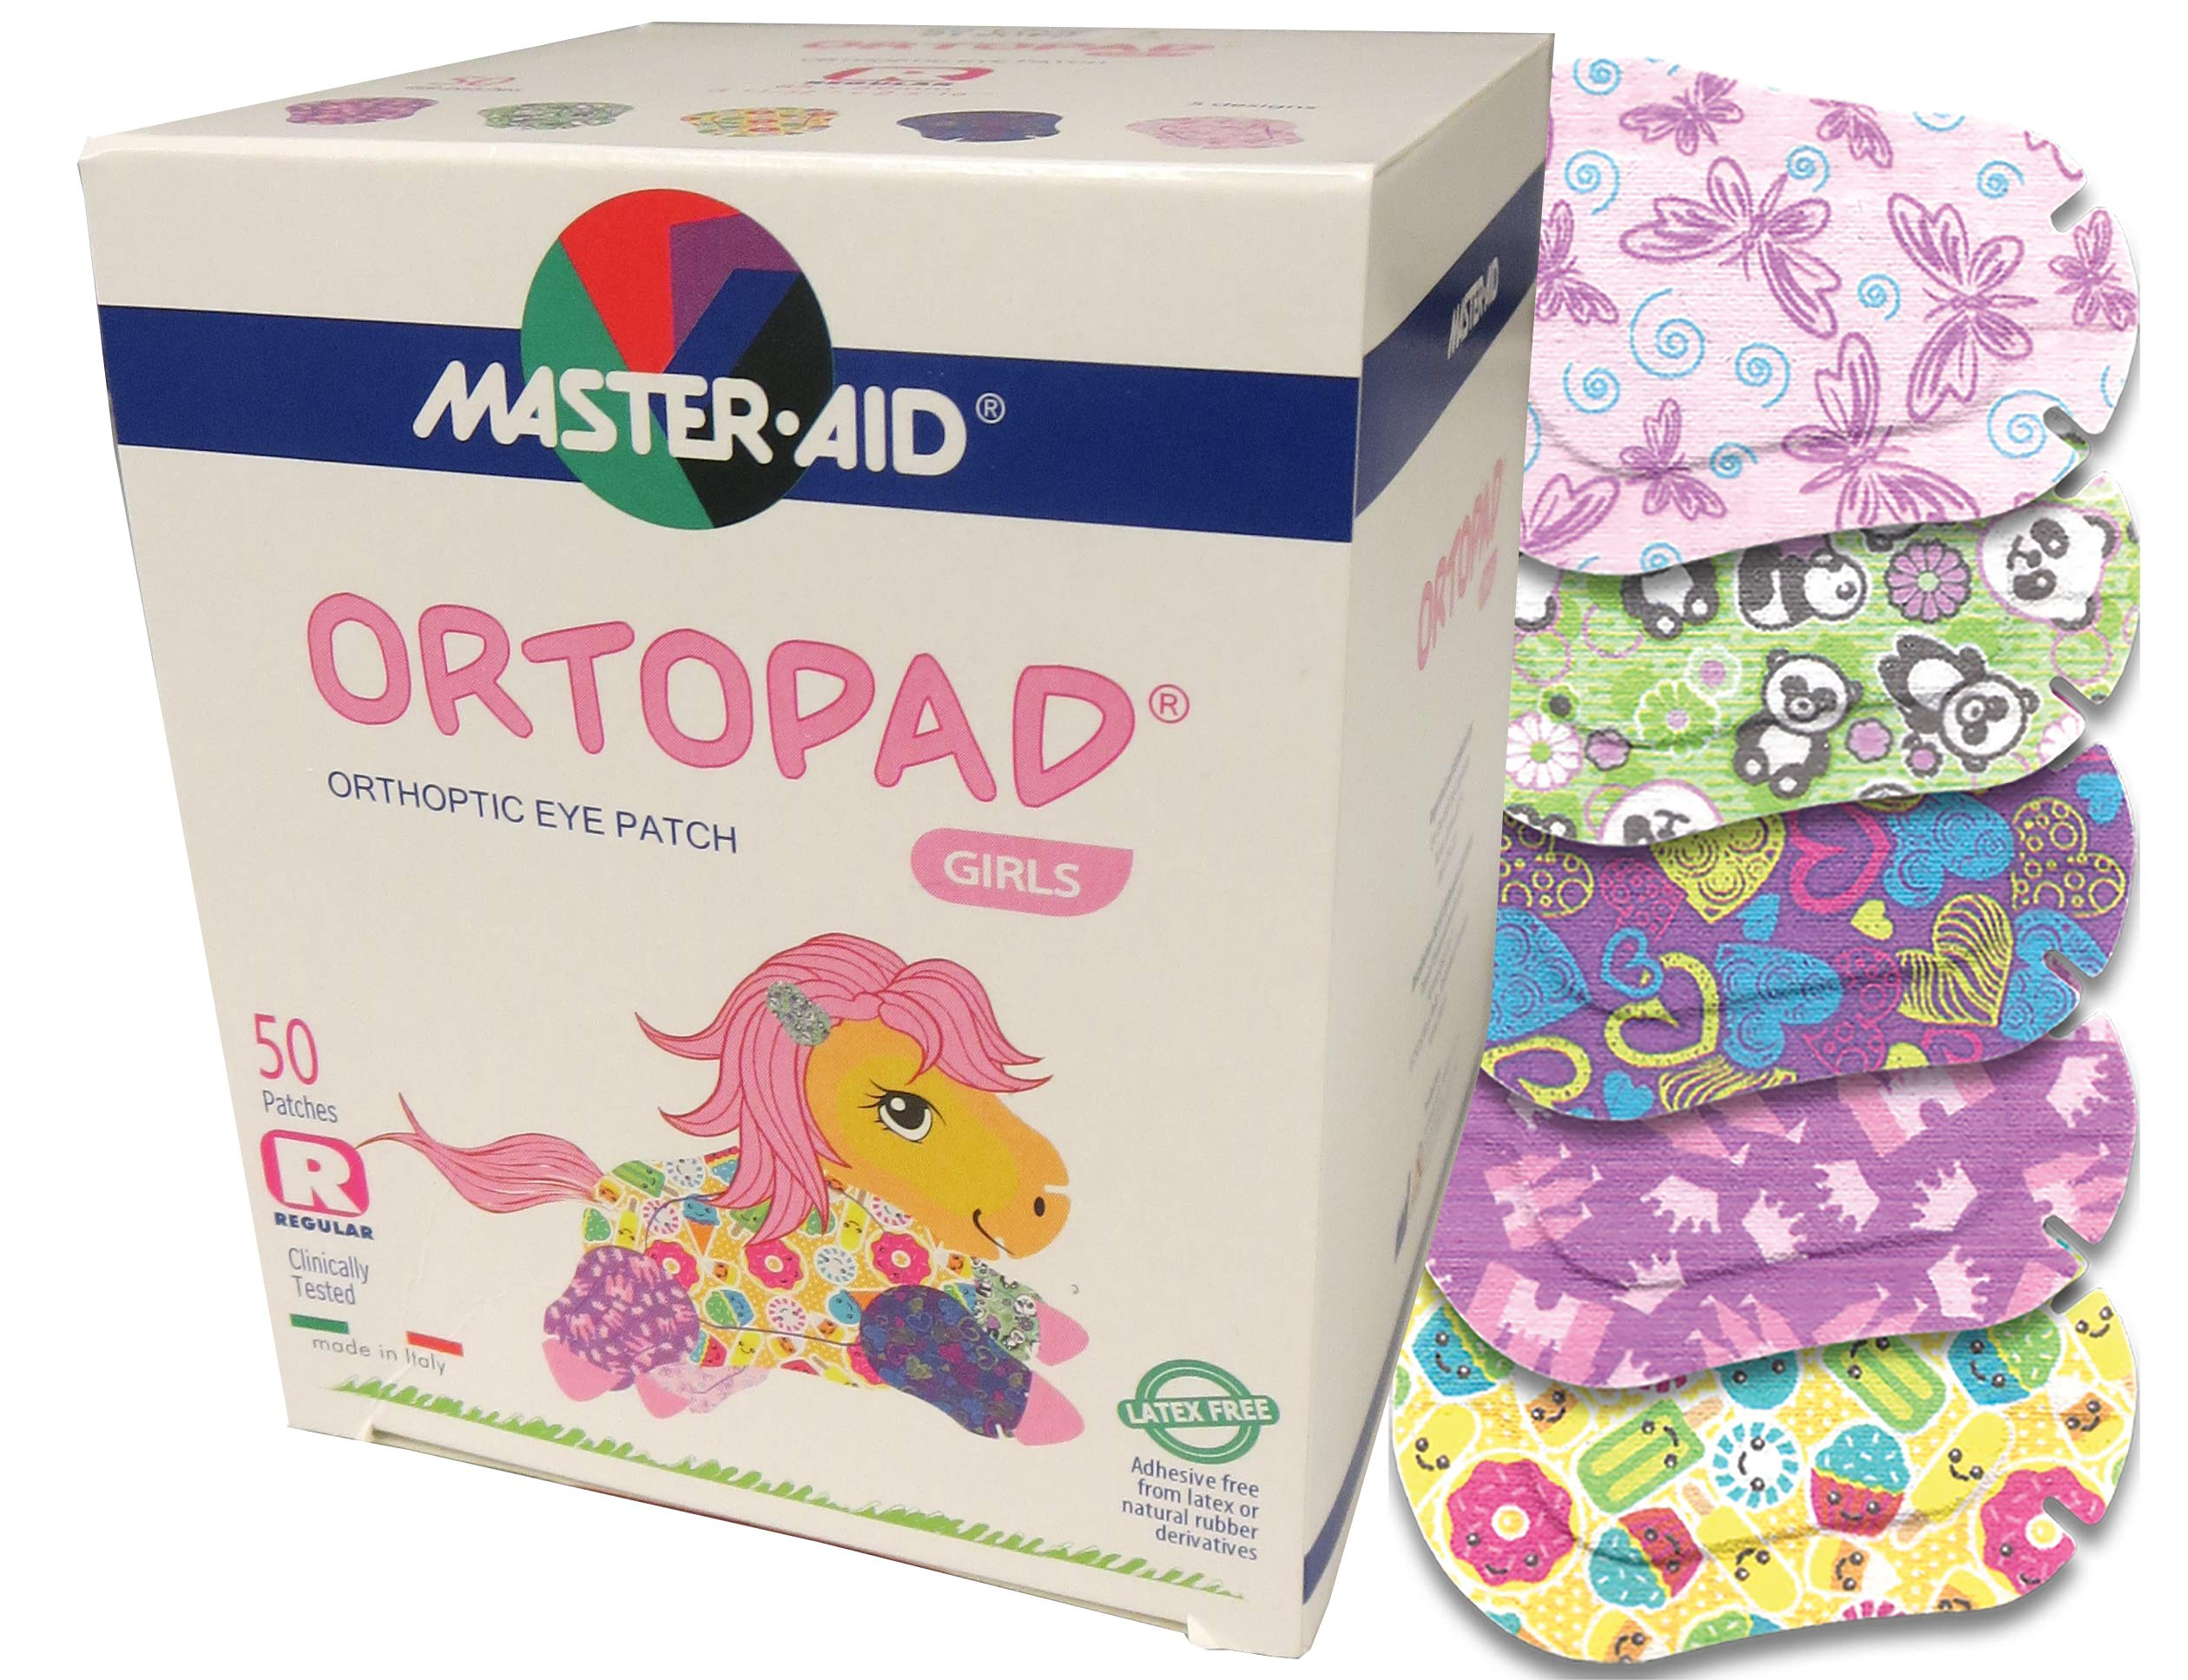 Ortopad Bamboo for Girls, Adhesive Eye Patches, Softer Material and New Designs (50 Per Box) (Regular Size)